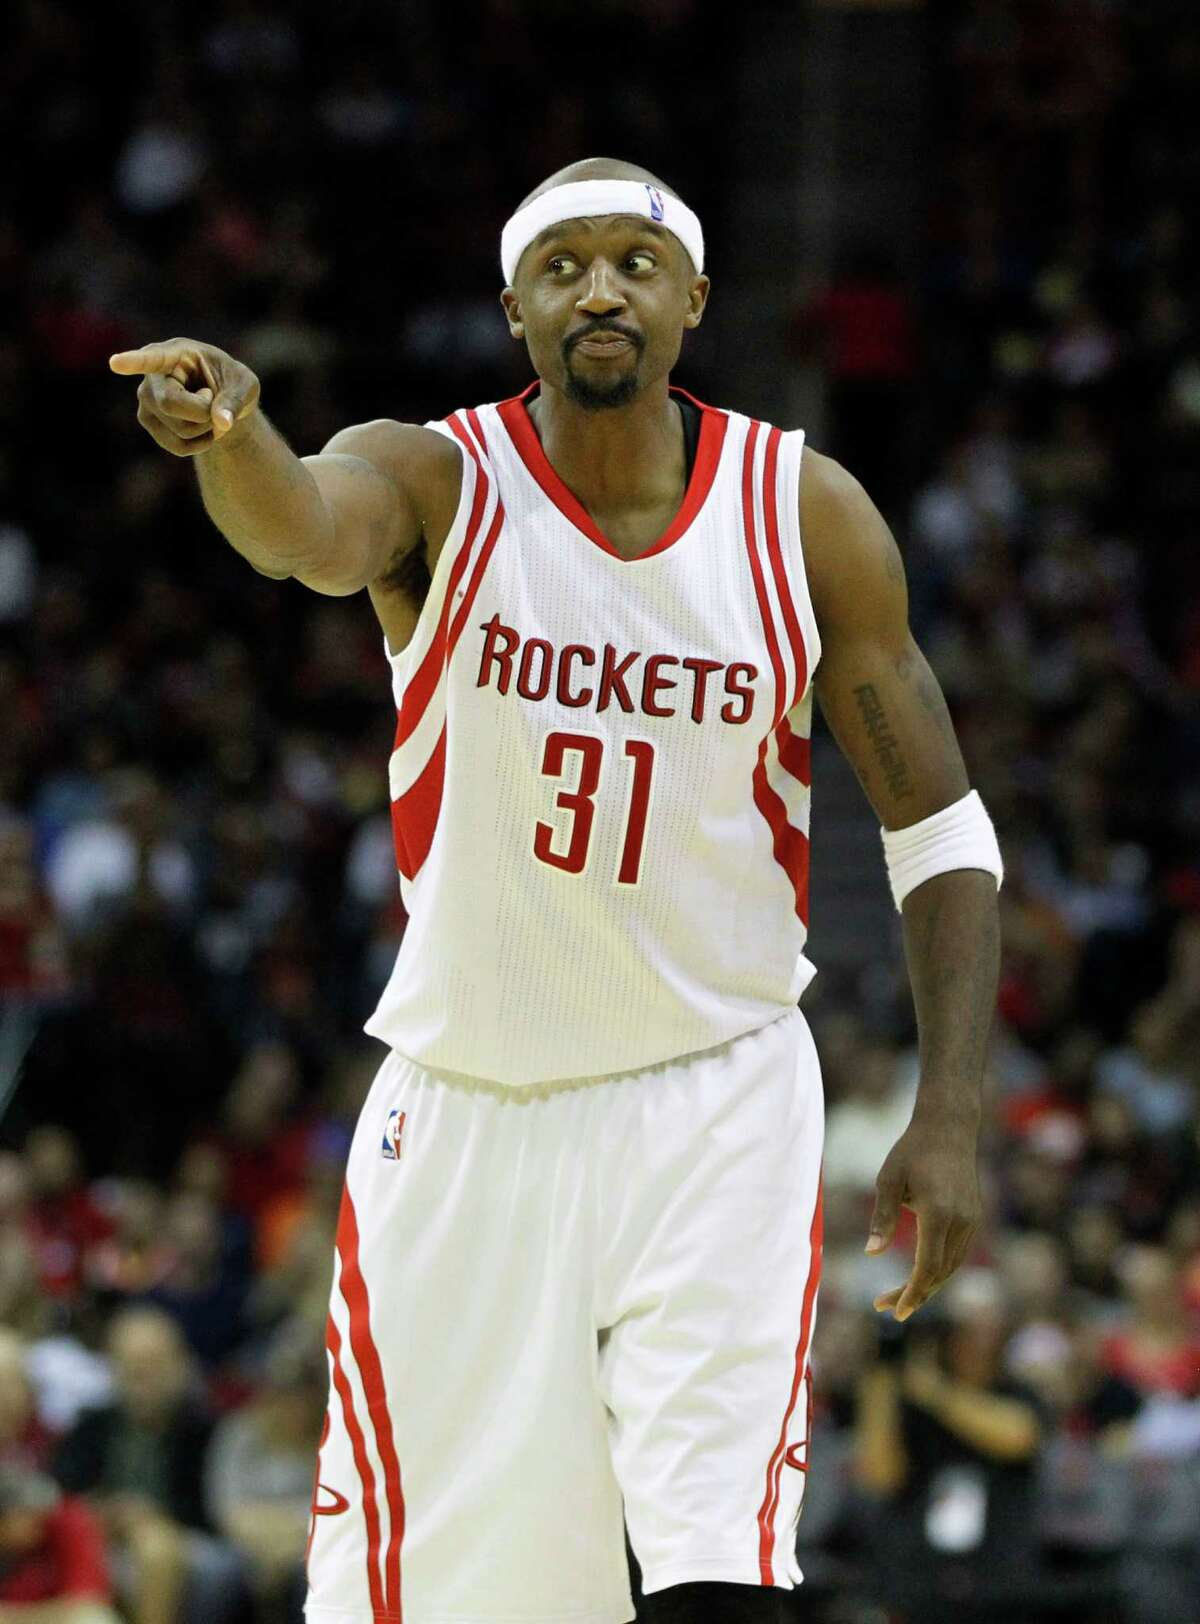 In an odds-defying move, guard Jason Terry is guaranteeing a Rockets victory in Game 5 on Wednesday night.